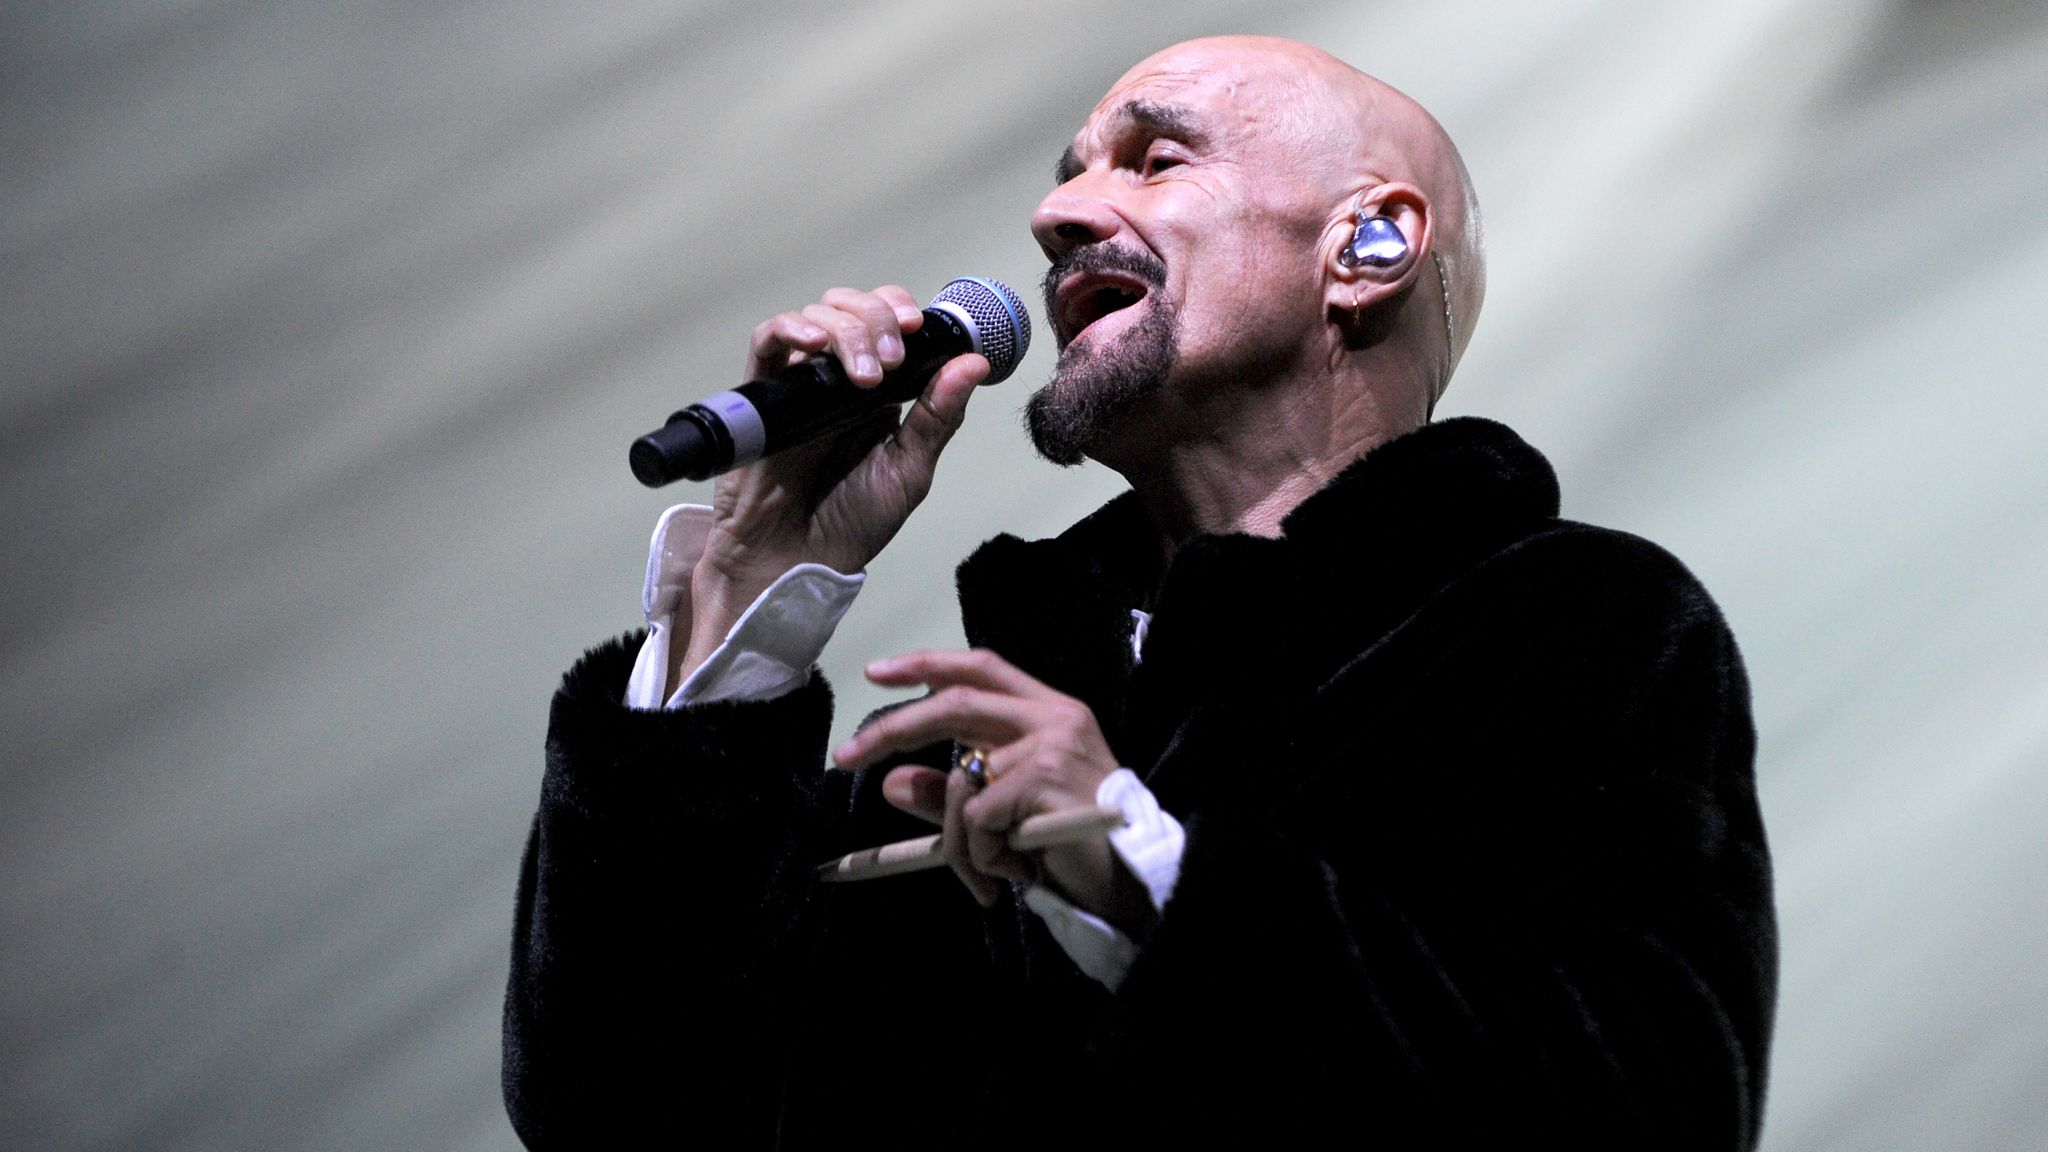 James frontman Tim Booth